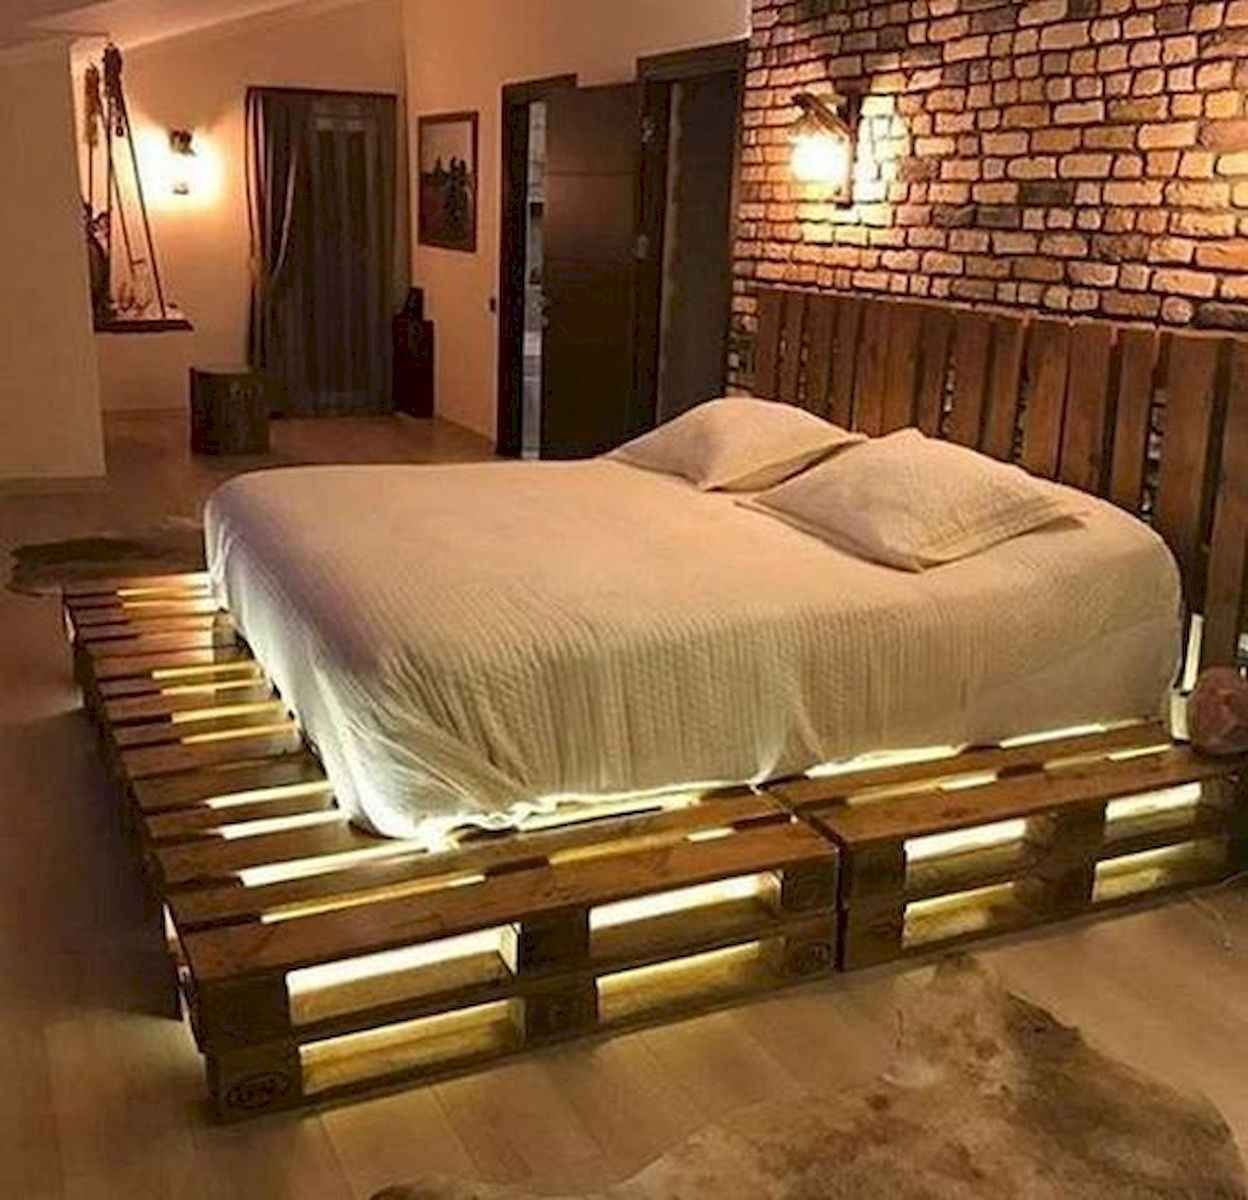 50 Creative Recycled Diy Projects Pallet Beds Design Ideas With Images Pallet Furniture Bedroom Diy Pallet Bed Pallet Furniture